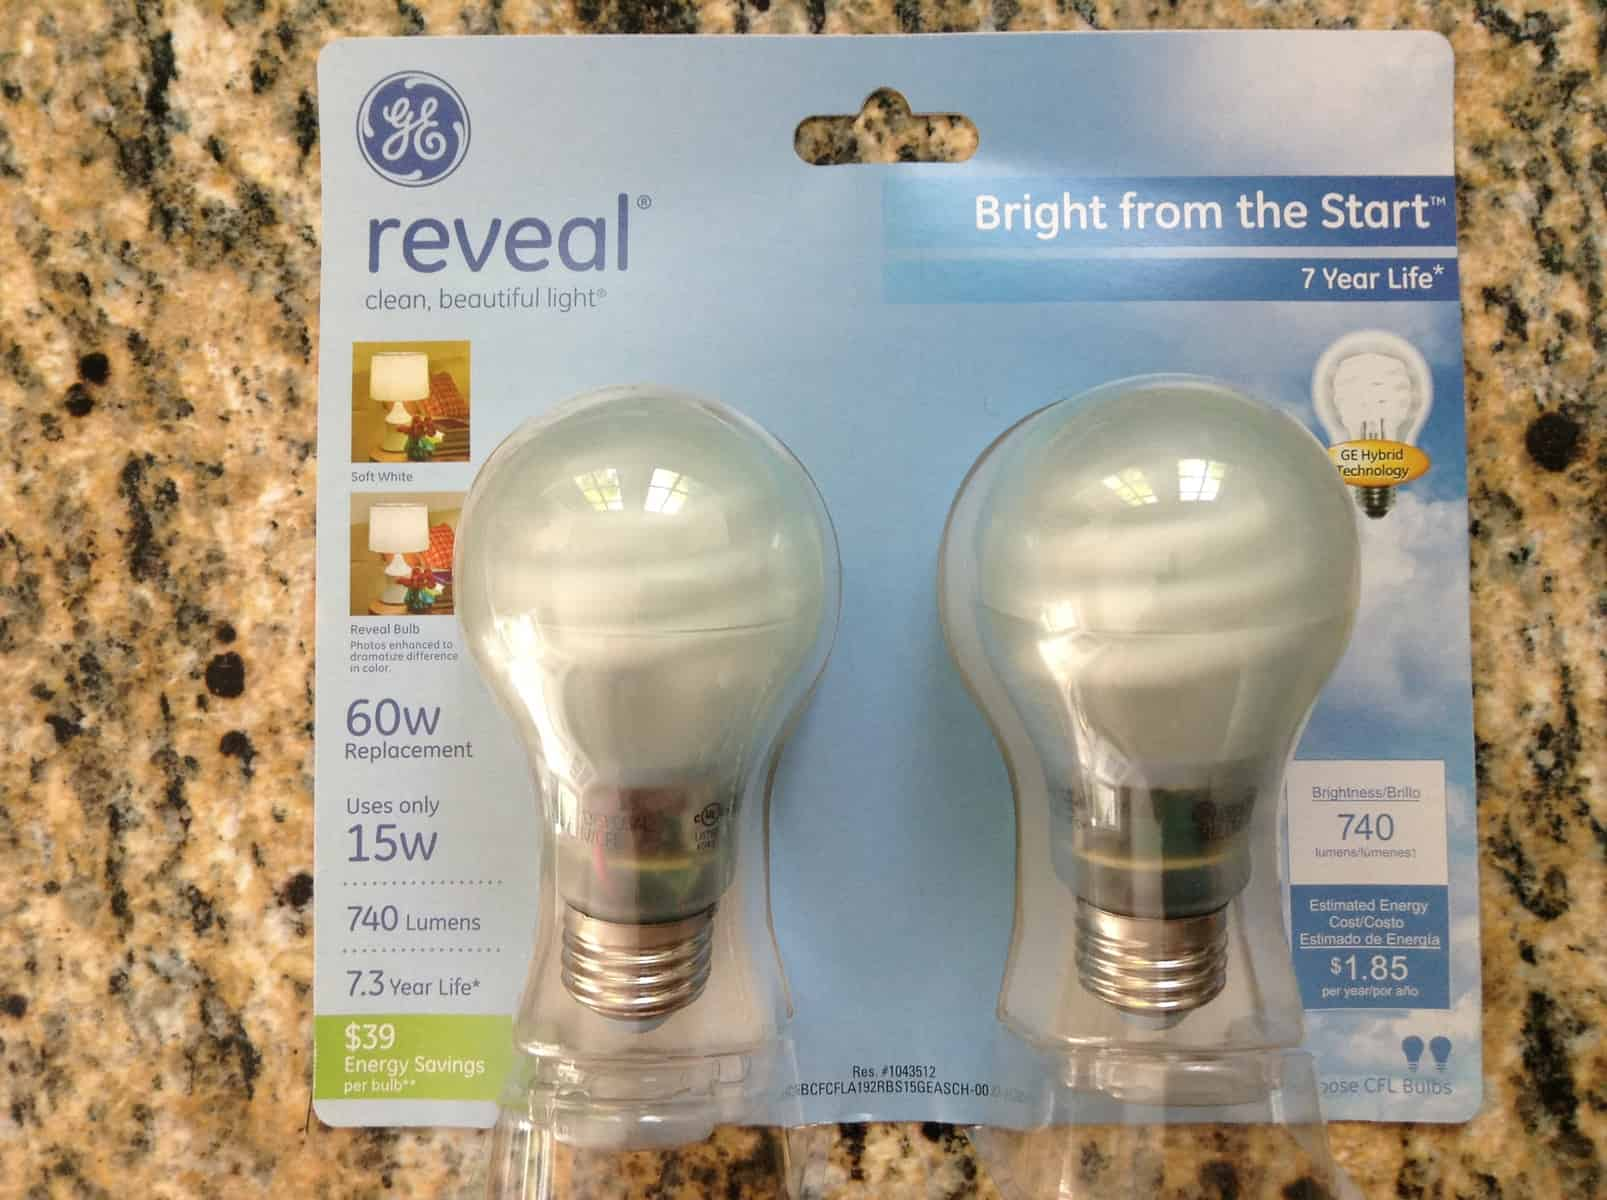 Light bulbs make a difference in decorating heartwork organizing ge reveal cfl bulbs audiocablefo